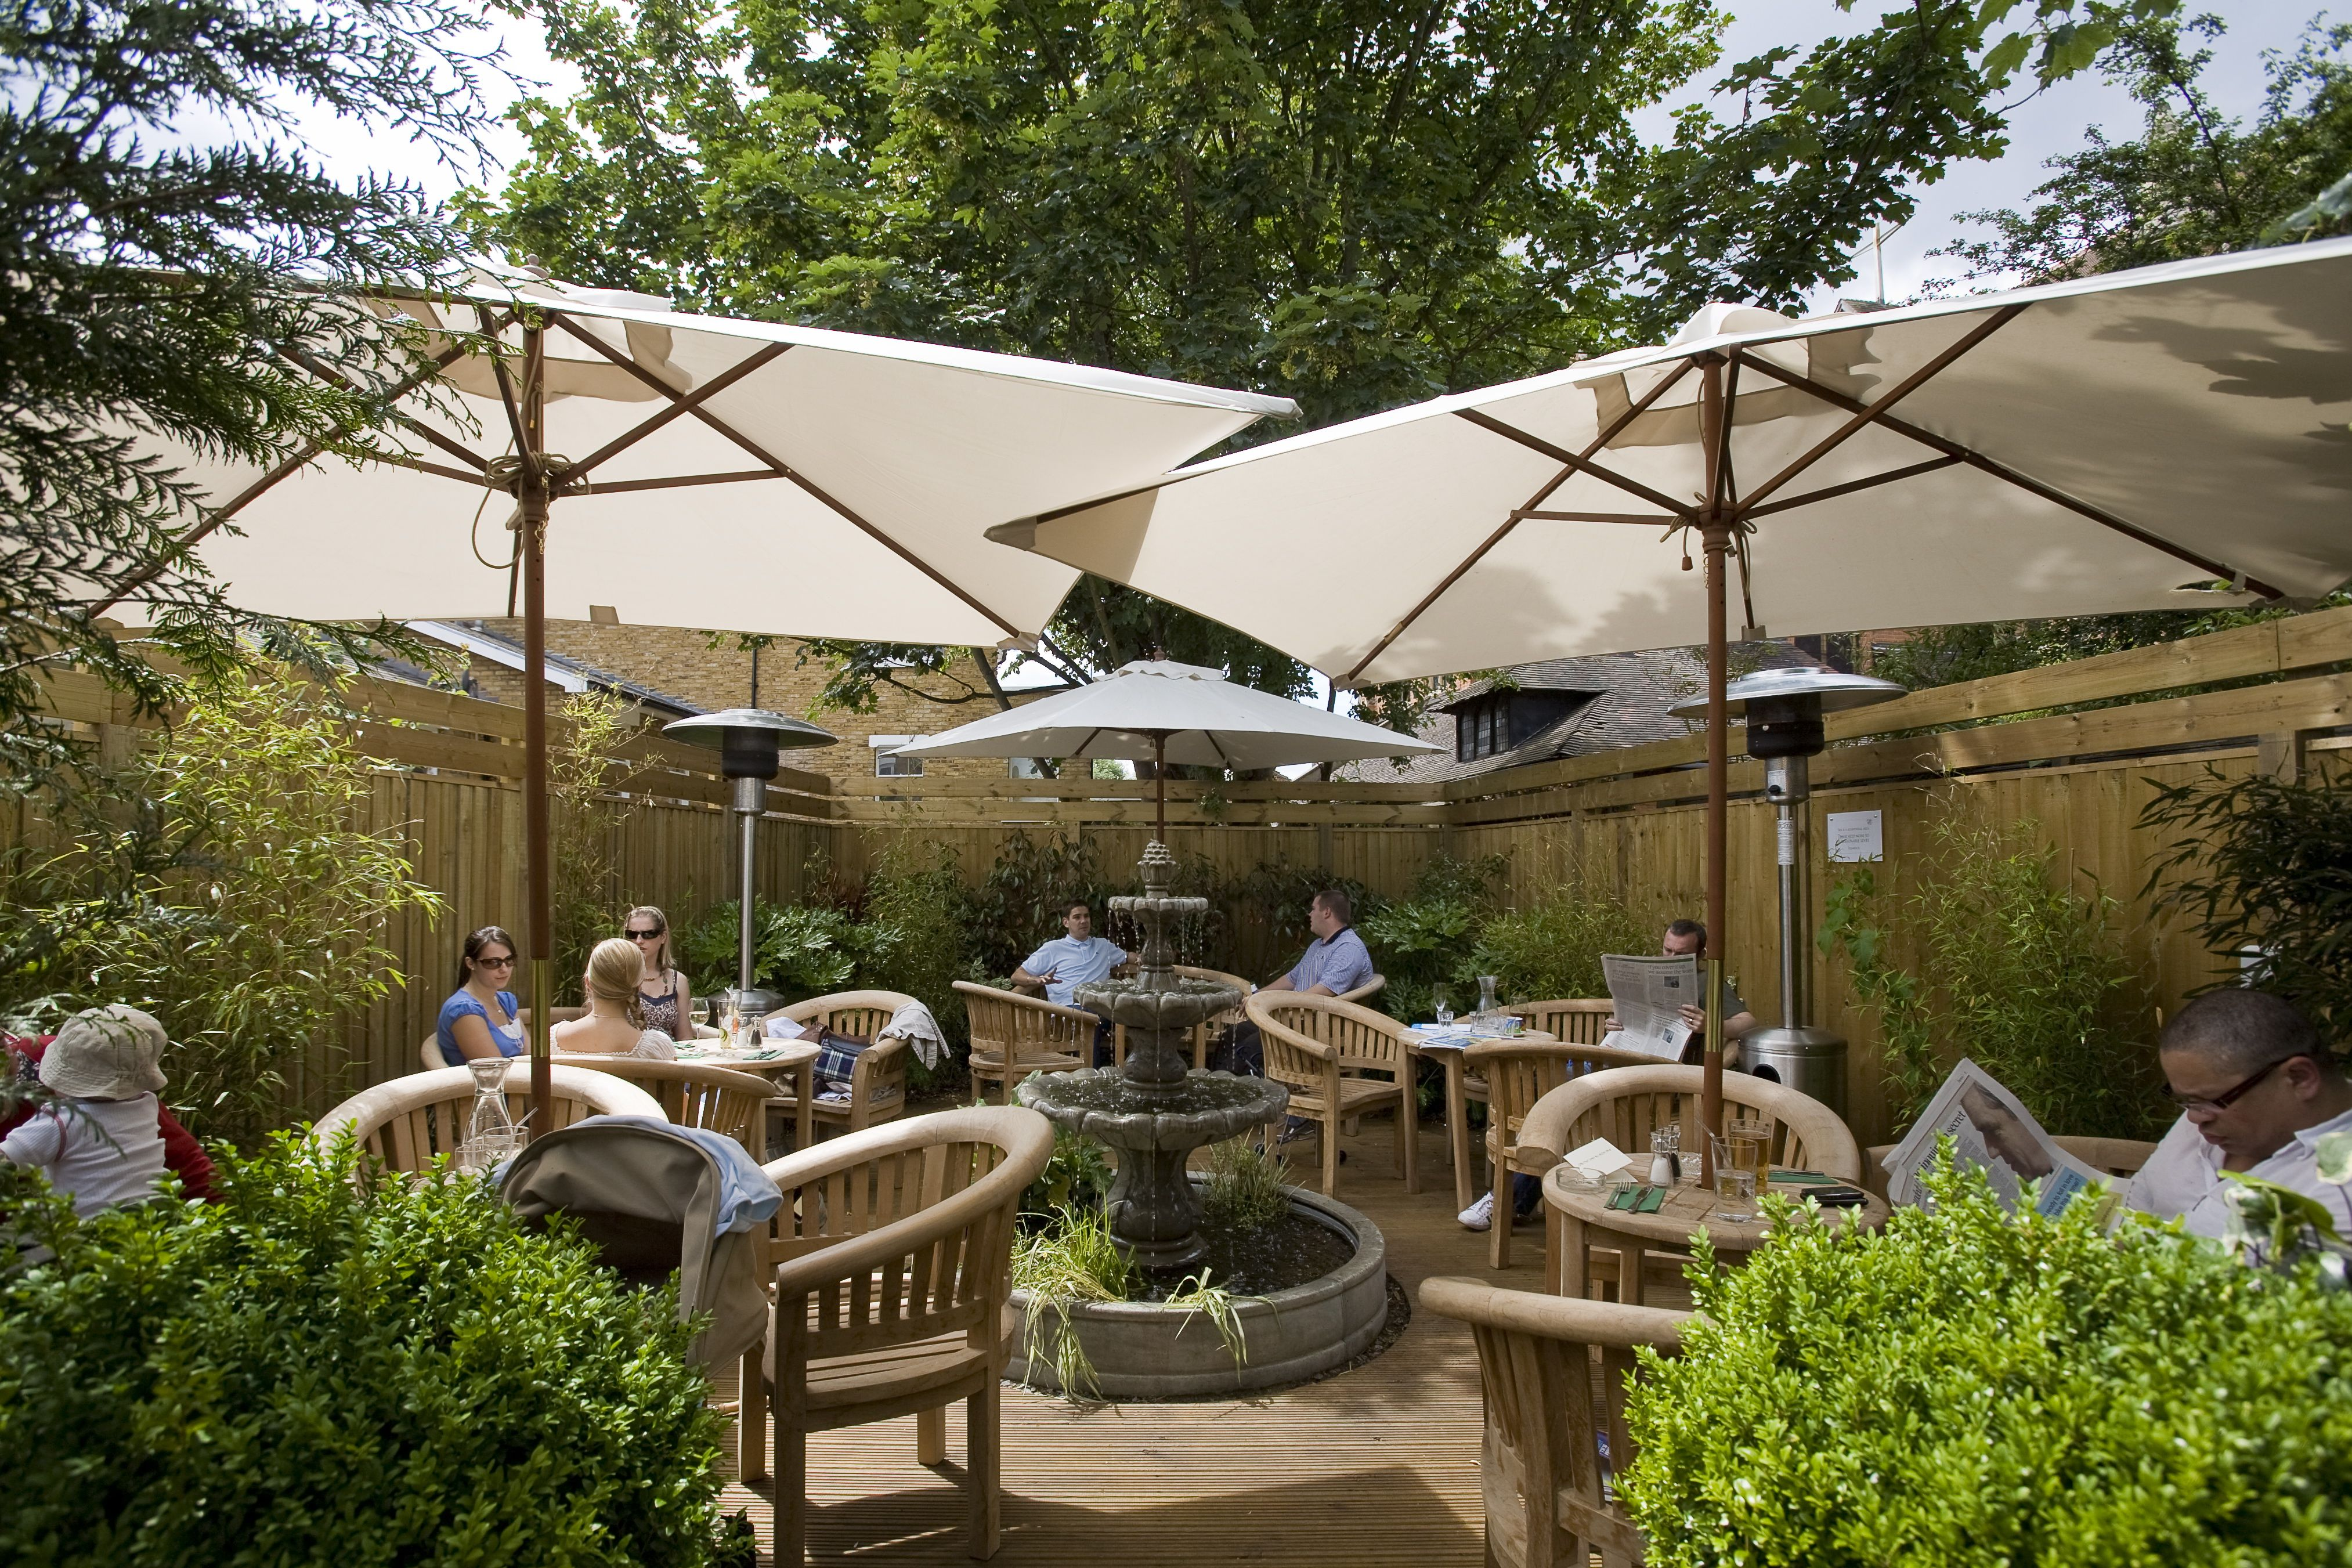 0159a5466c739c9cdcadd2a1fe84e75a - Best Pubs With Beer Gardens Near Me